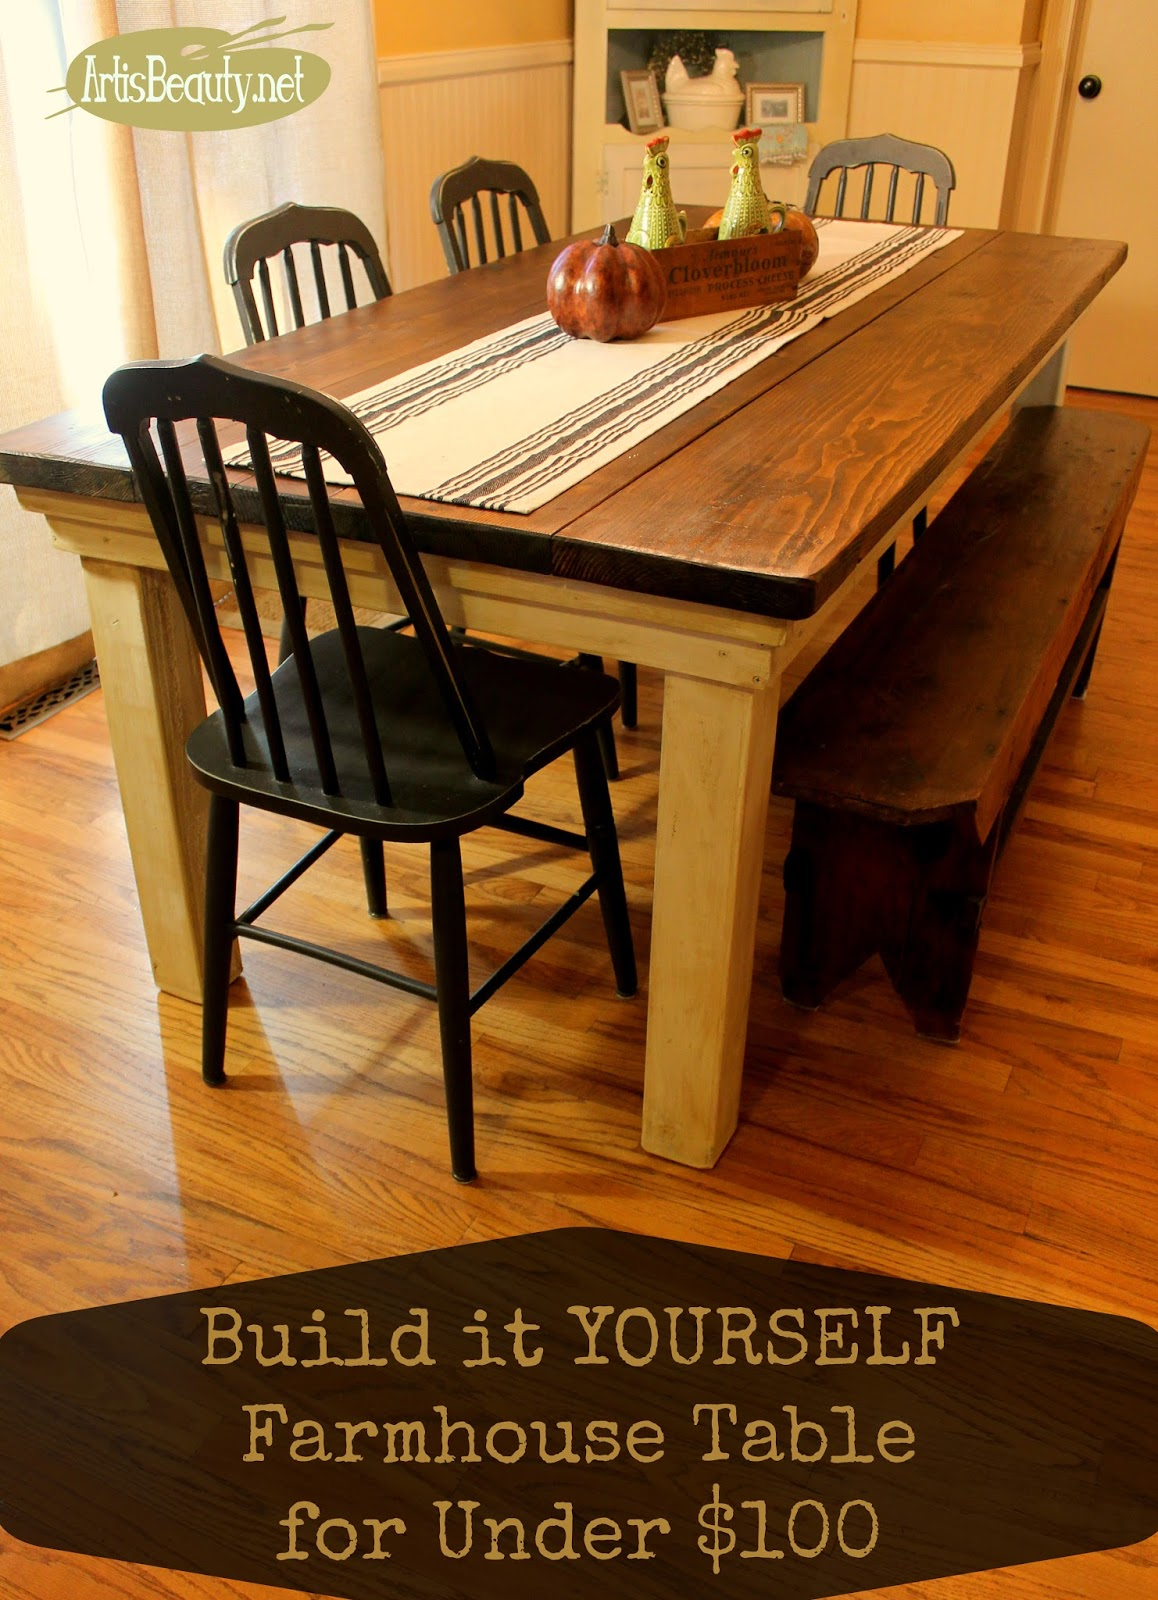 Cheap Farmhouse Table And Chairs Reclaimed Wood Dining Art Is Beauty How To Build Your Own For